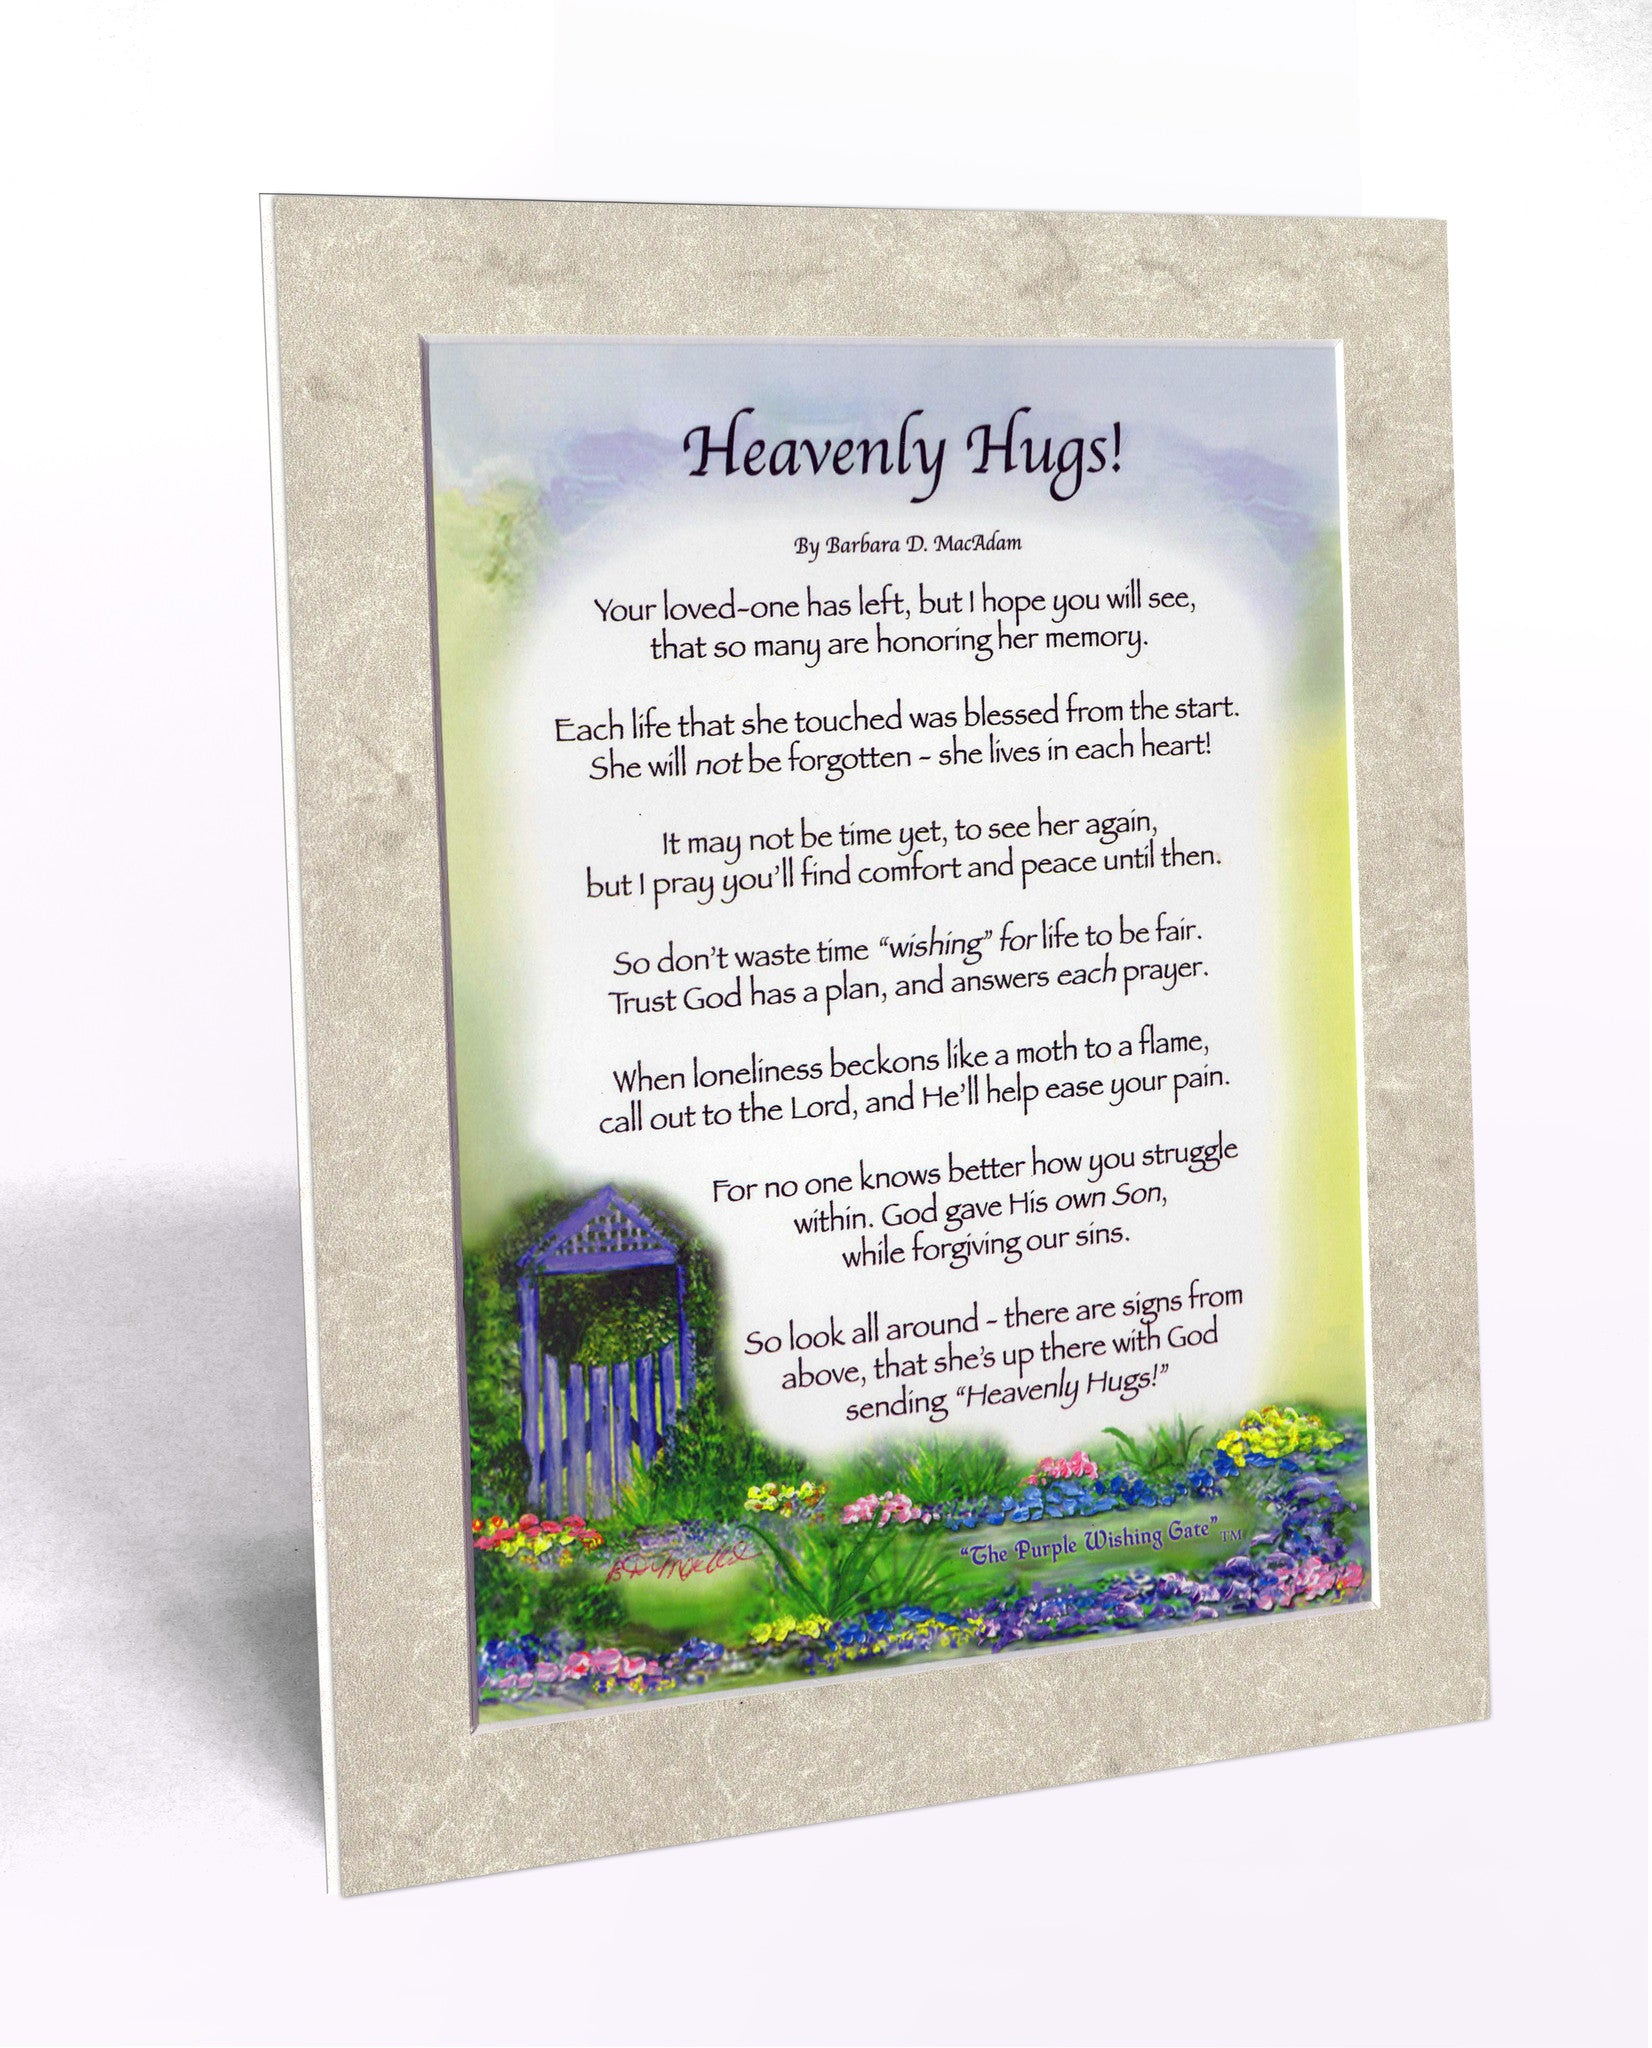 Heavenly Hugs (for Her)! (8x10) - 8x10 Custom Matted Clearance - PurpleWishingGate.com